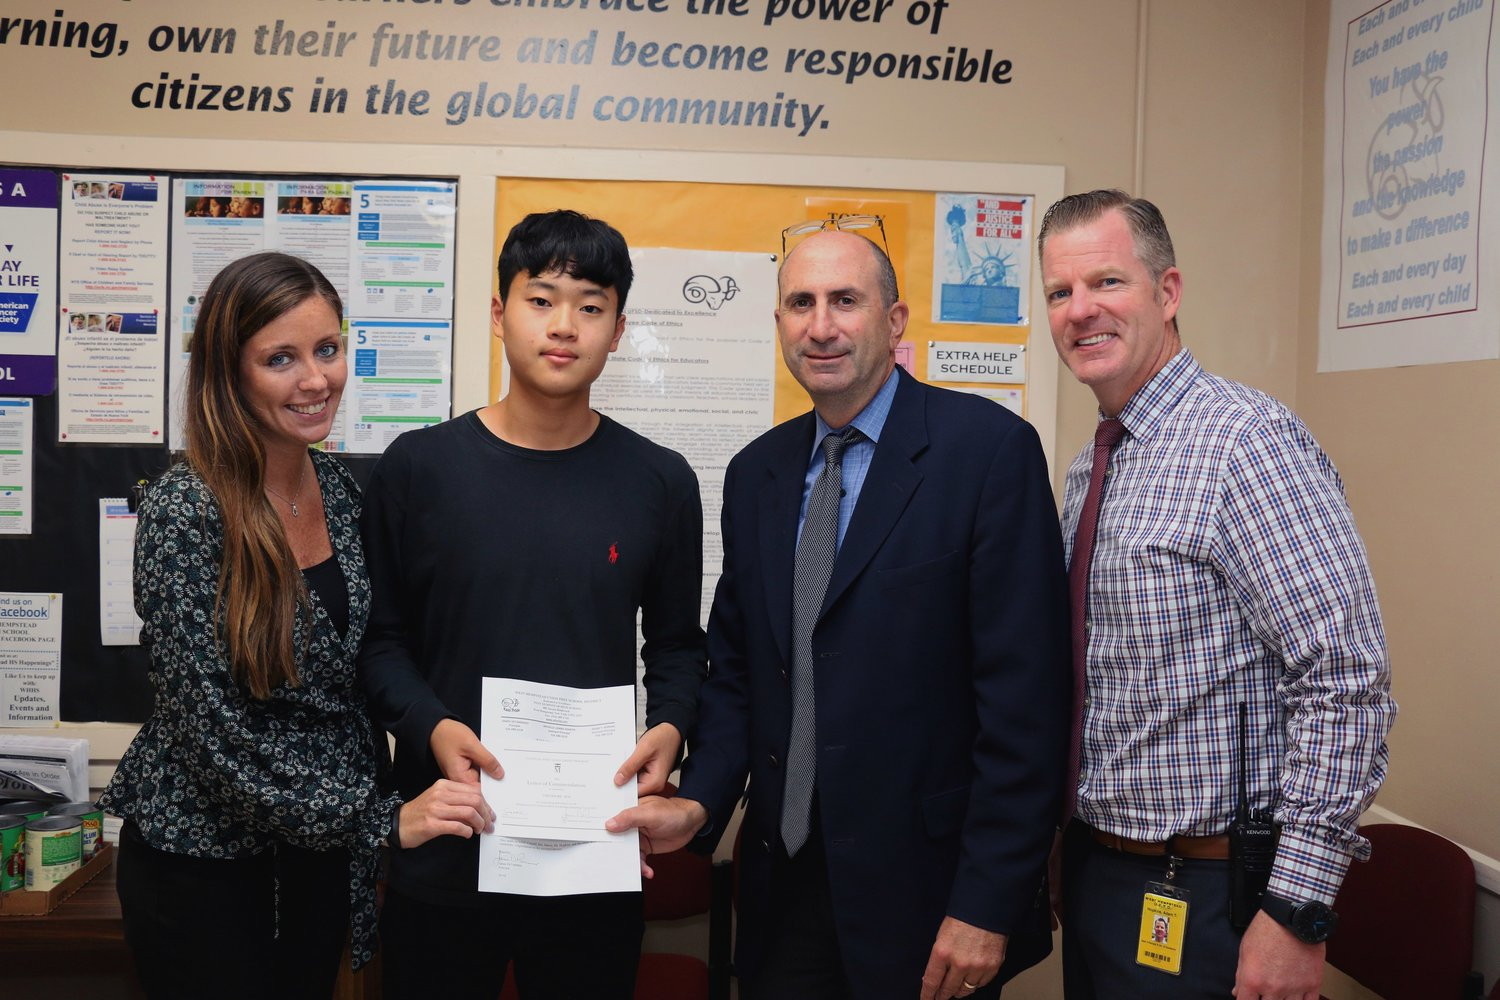 West Hempstead High School guidance counselor Jacqueline Lennon, left, presented senior Theodore Kim with a letter of recognition as a Commended Student in the National Merit Scholarship Program. Kim was joined by WHHS Principal James DeTommaso, second from right, and Assistant Principal Adam Hopkins.